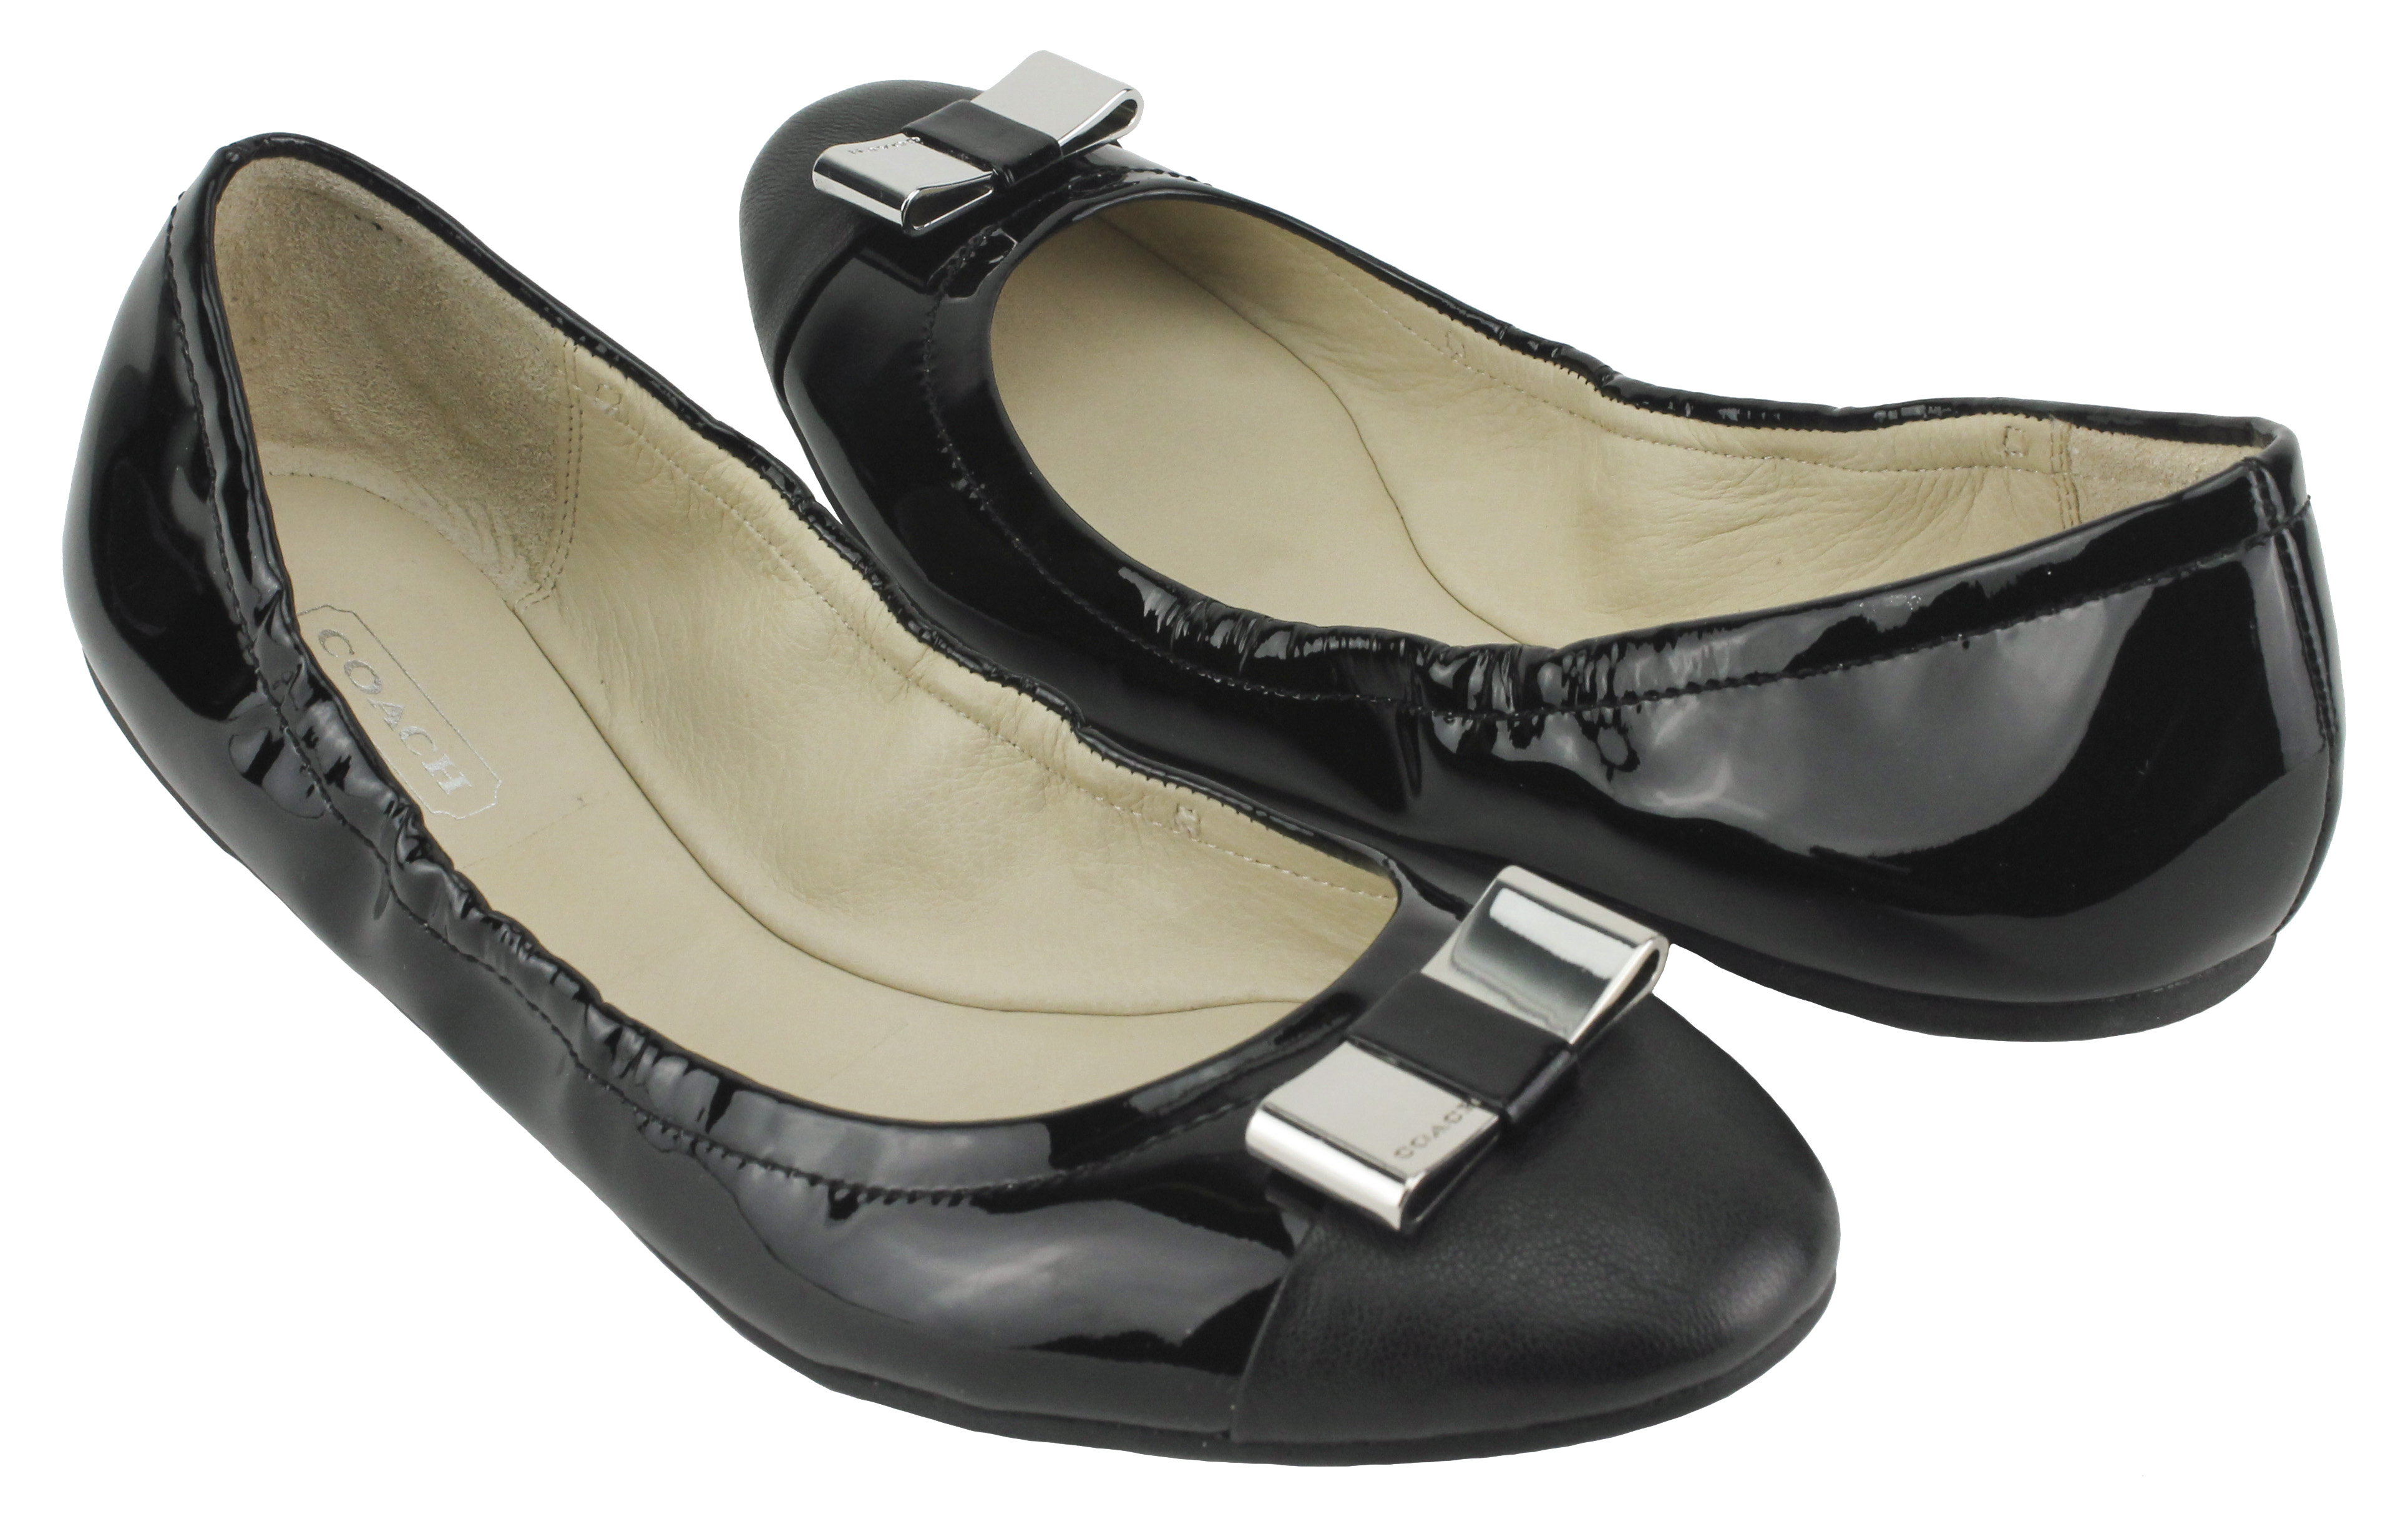 Black Coach Shoes For Women Image is loading coach-womens